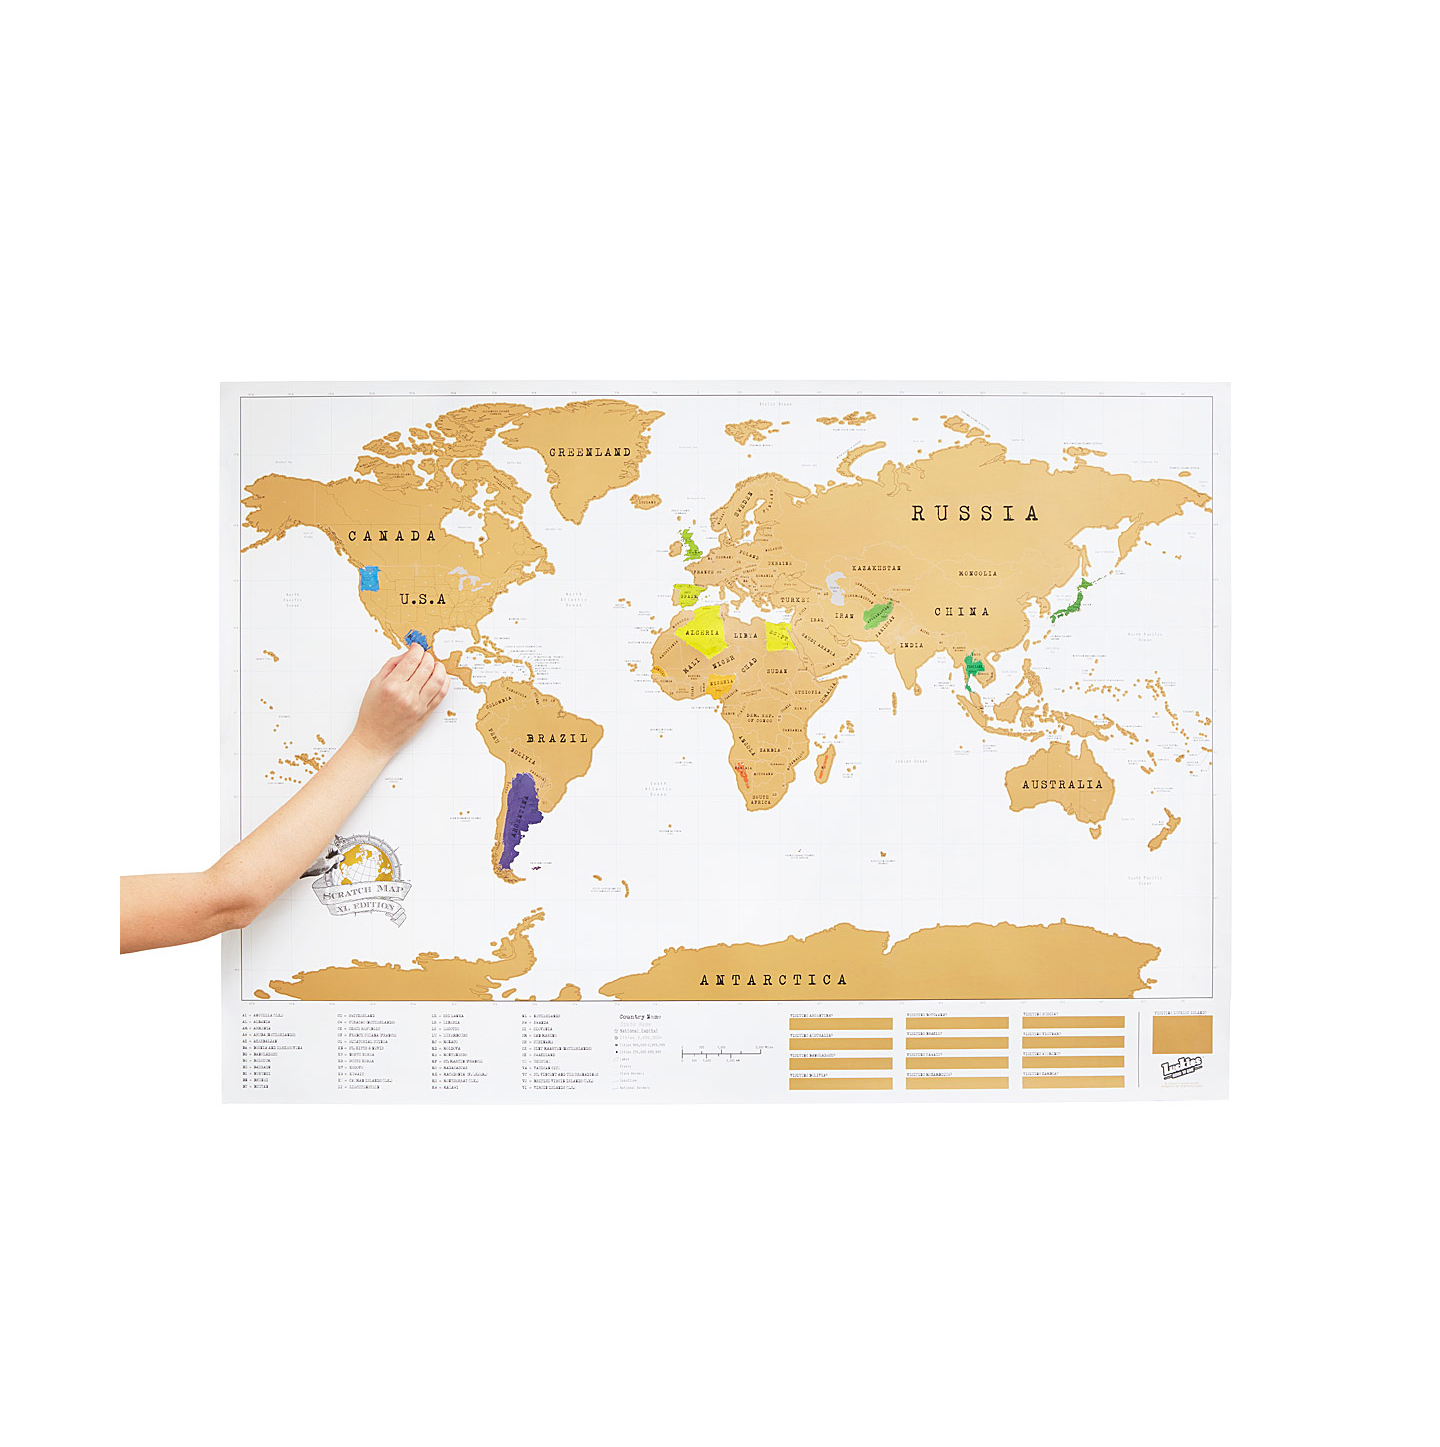 Valentines Gifts for Him: Scratch Map from Uncommon Goods